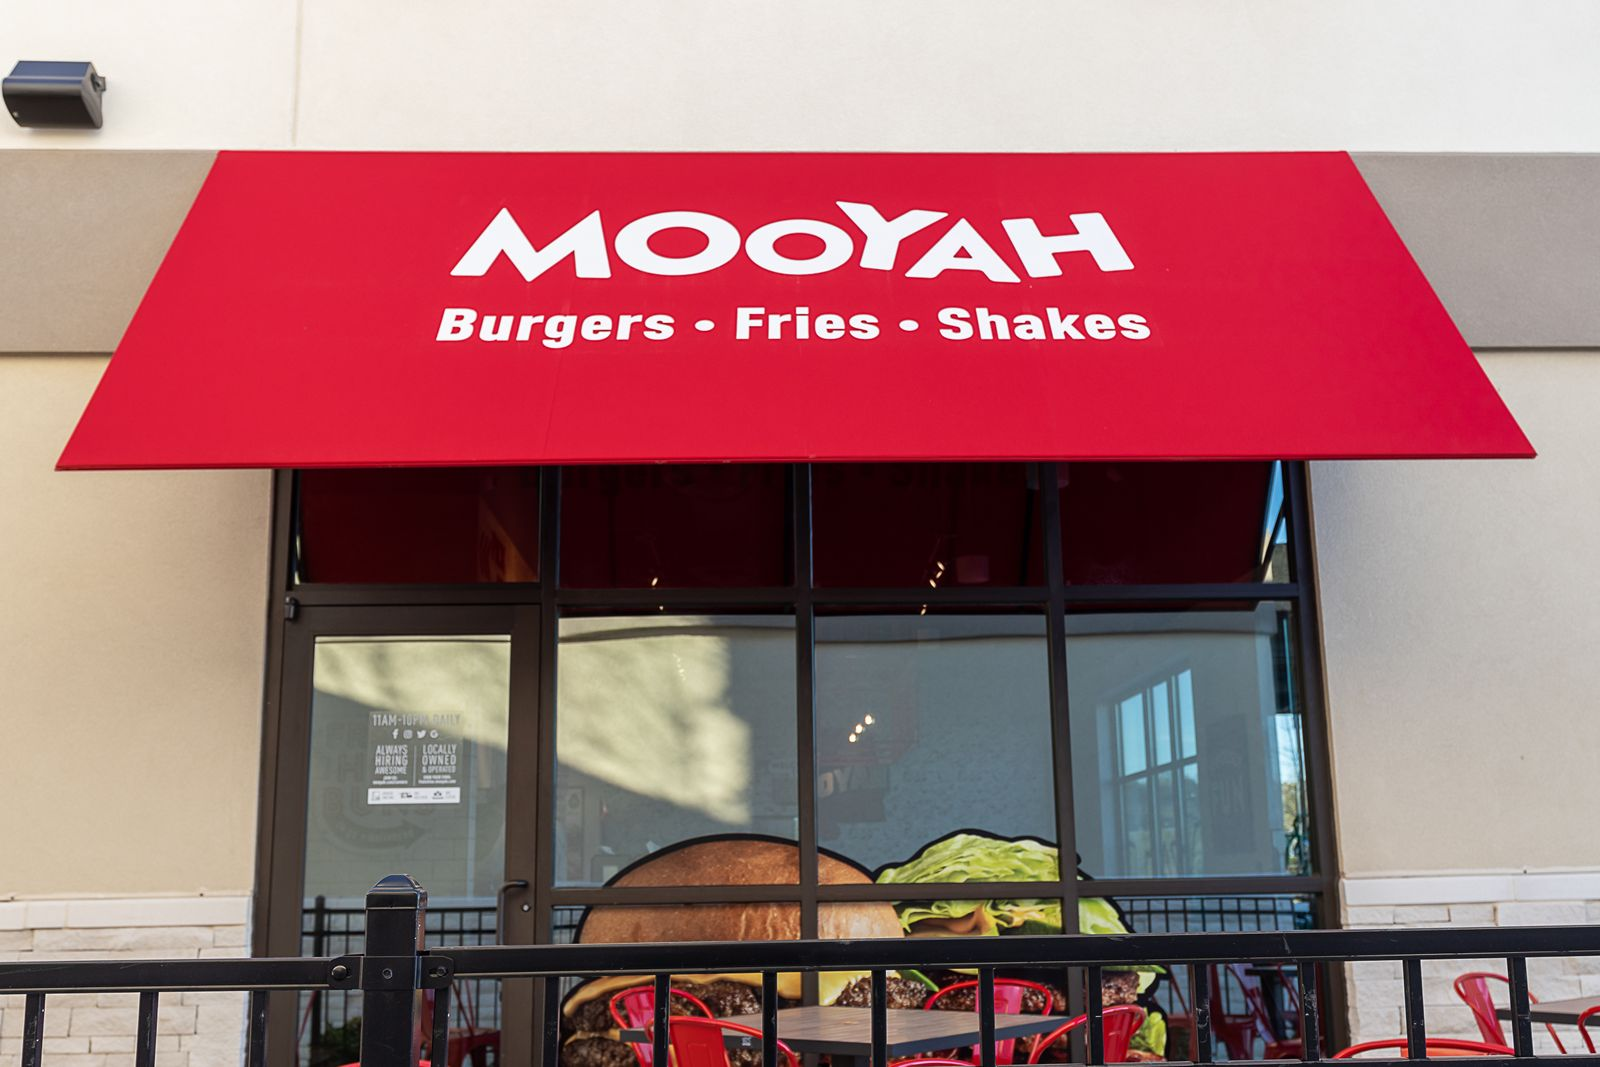 MOOYAH Burgers, Fries & Shakes Solidifies Spot as Top Conversion Opportunity for Restaurant Owners with New Franchise Deals Signed Across the U.S.